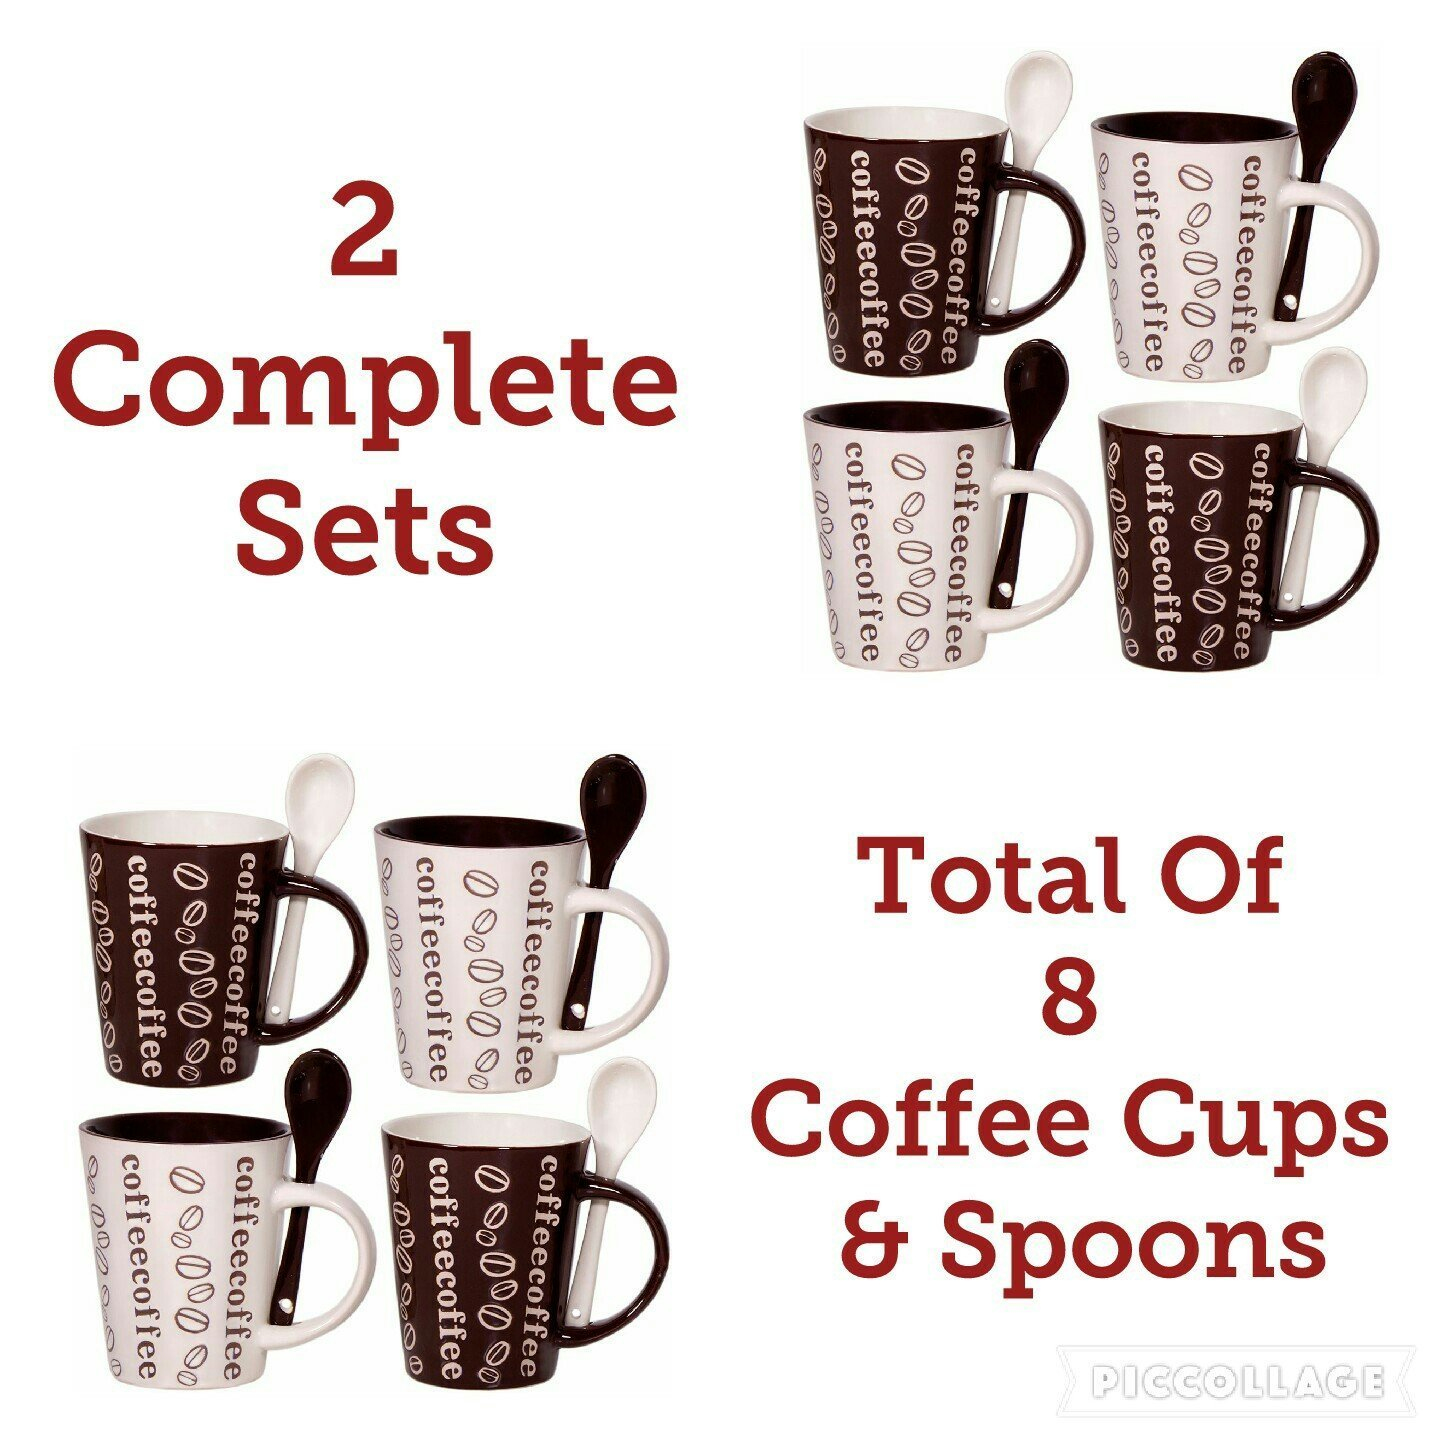 Cafe Style 10 Oz Coffee Mug and Spoon, (2 Set of 4 - 8 Coffee Cups in Total) Coffee Swirl - Brown, White